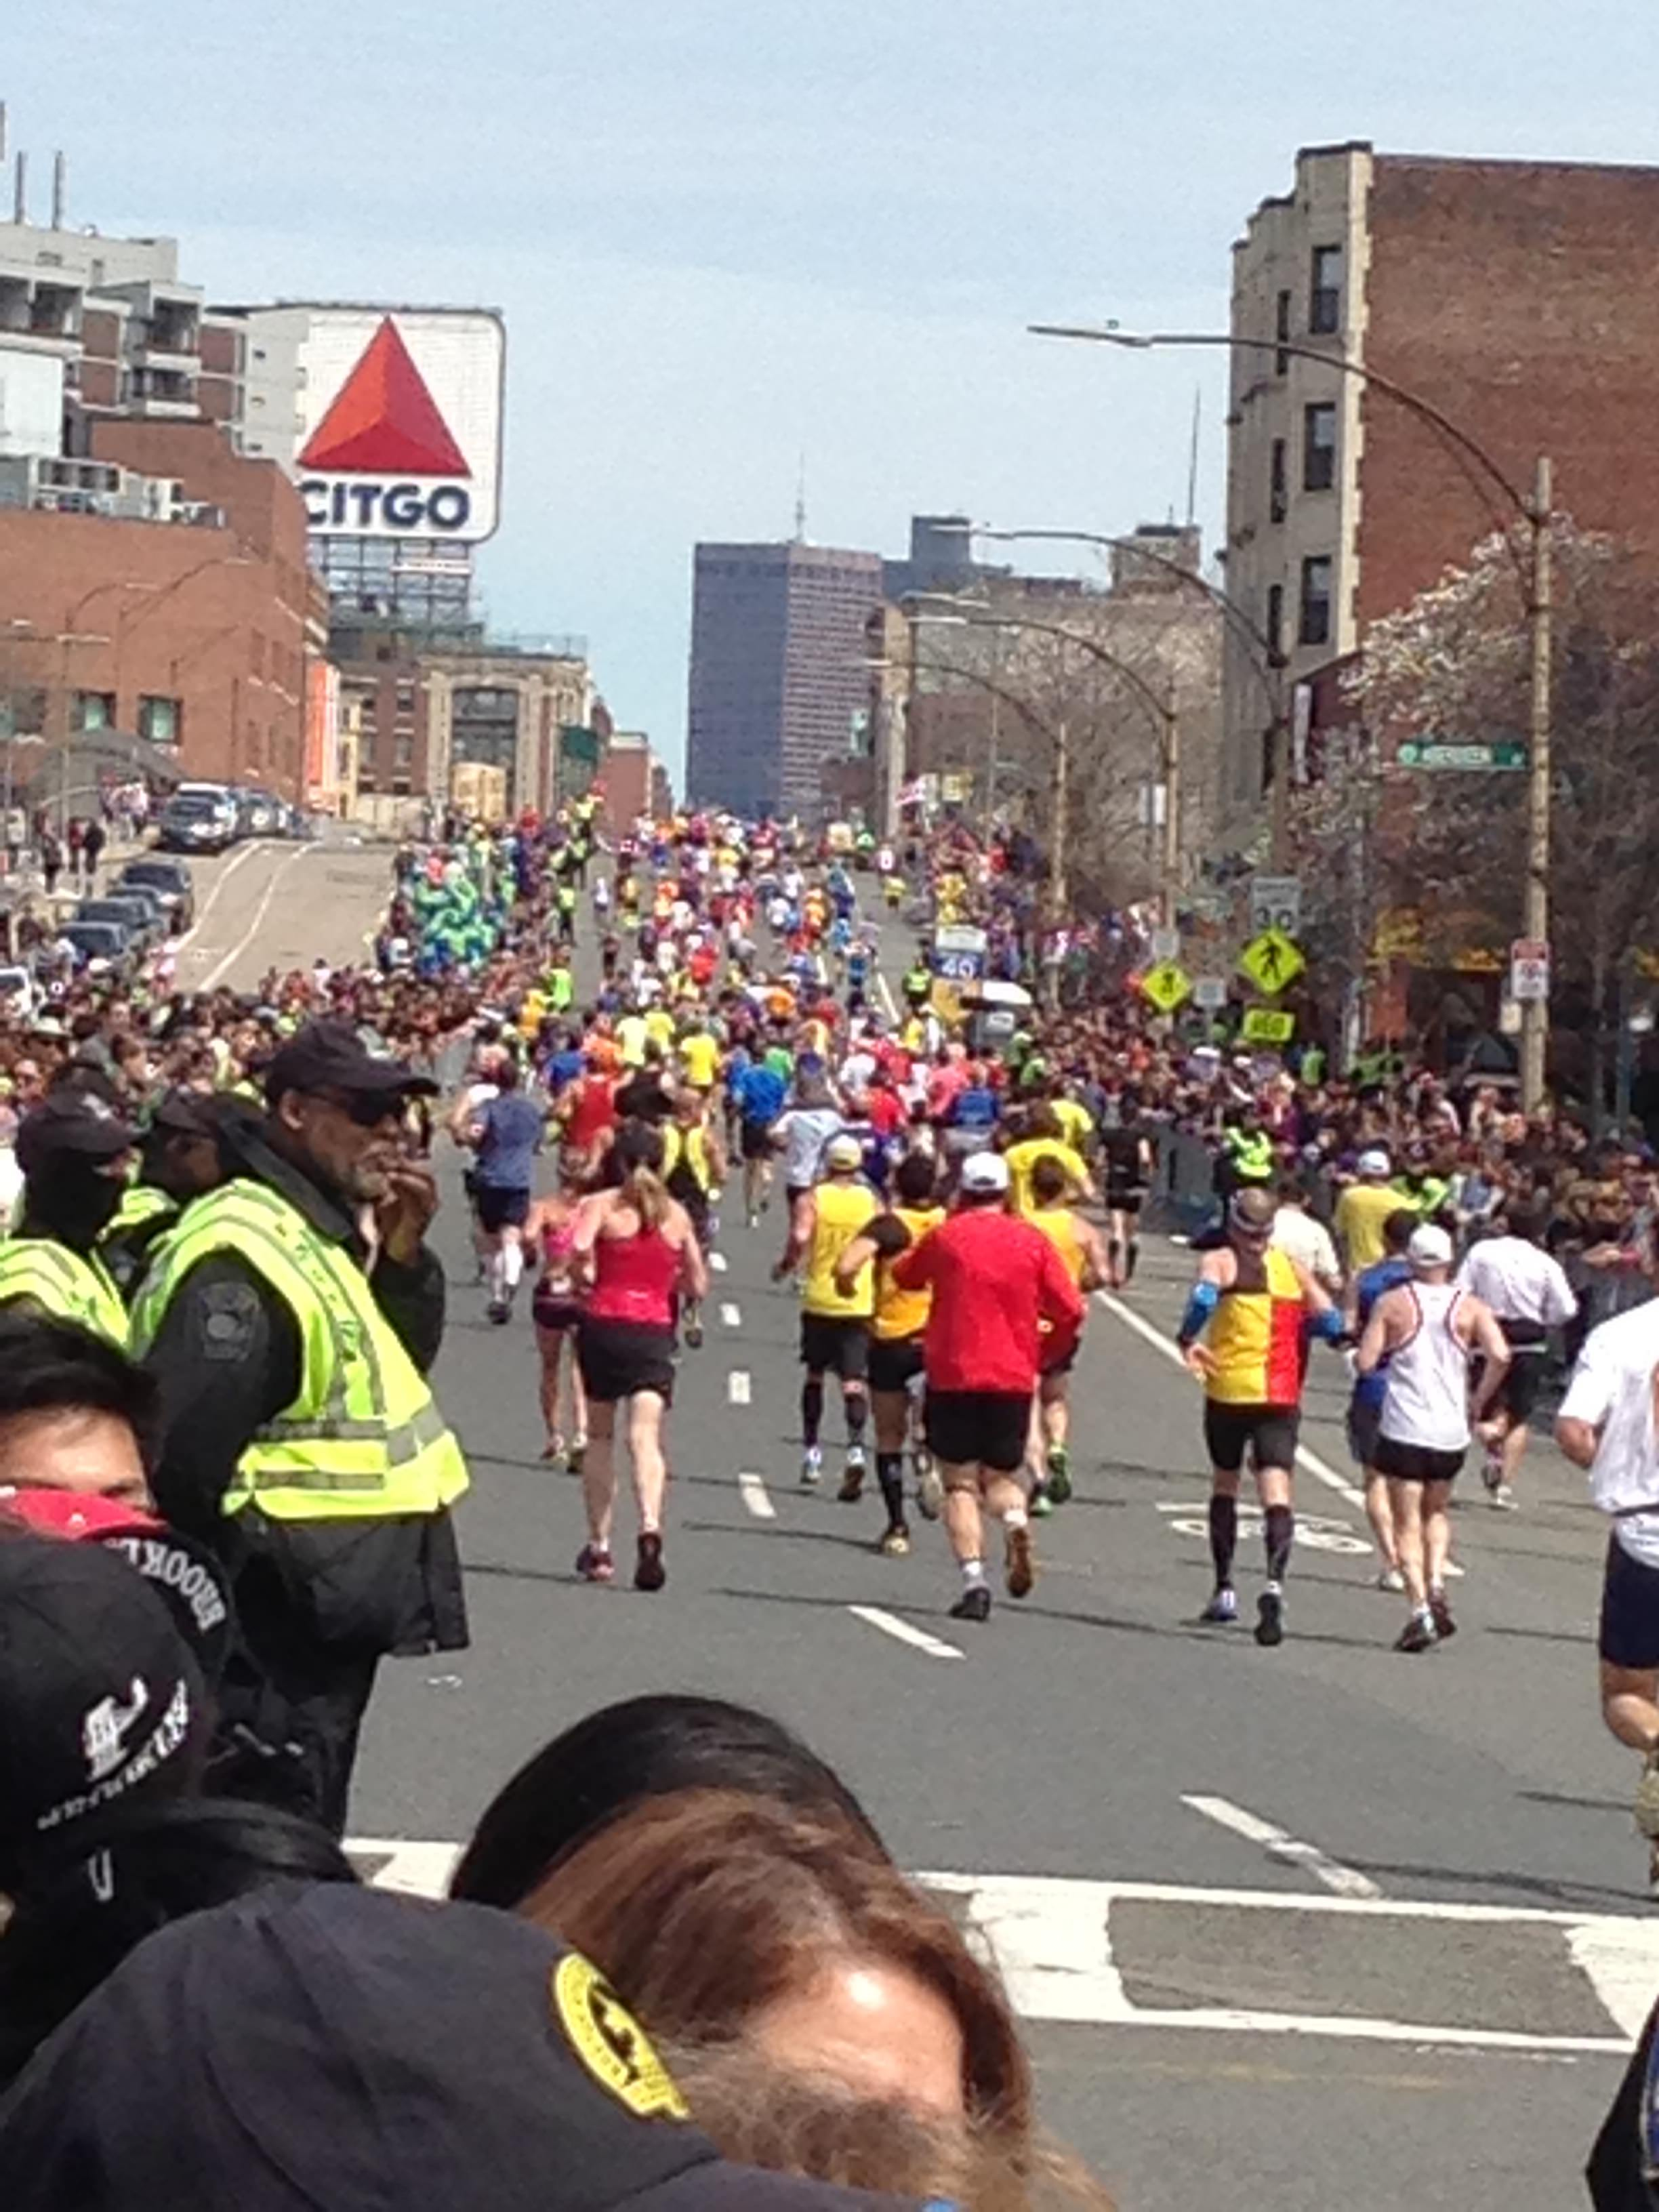 The annual Boston Marathon. On Monday (April 15), bombs exploded at the finish line, killing three and injuring hundreds. Source: Katherine Smith/Arbitrage Magazine